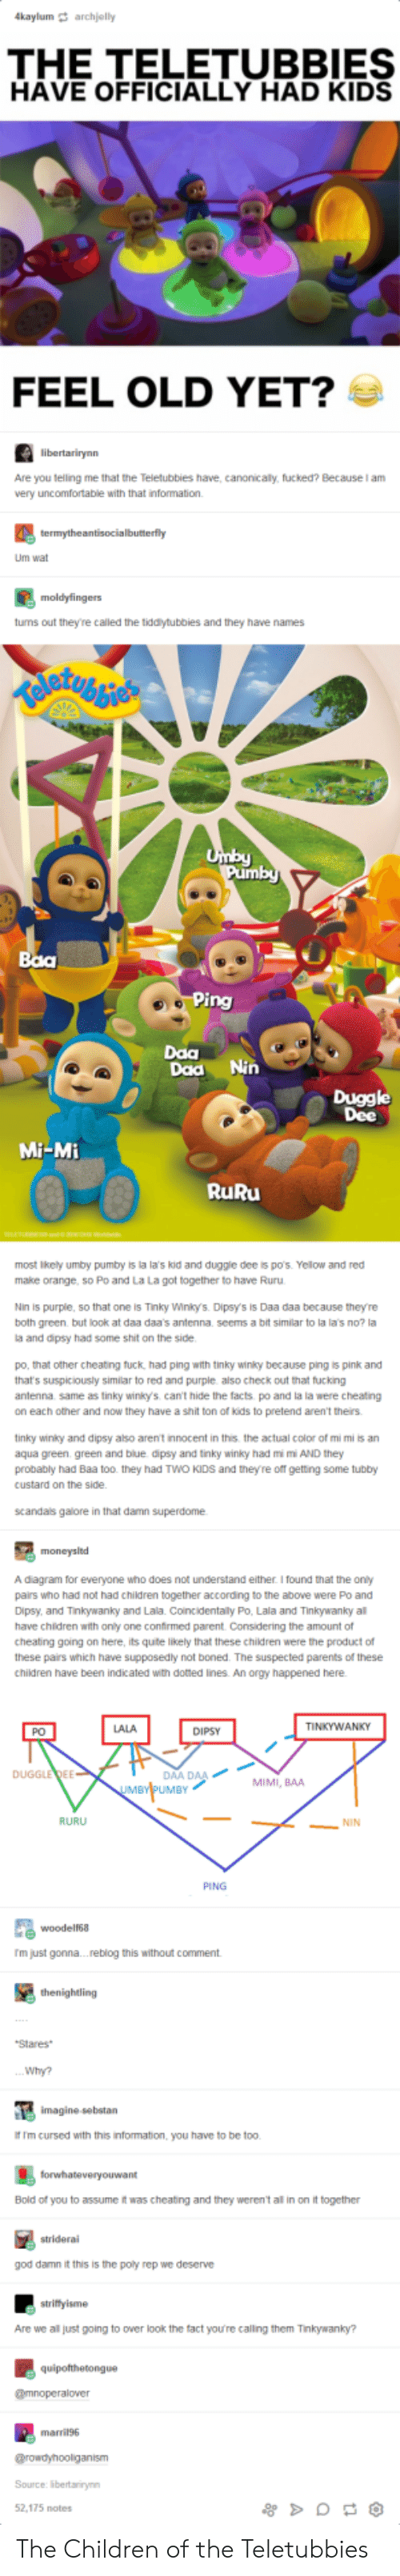 Cheating, Children, and Facts: kaylum archjelly  THE TELETUBBIES  HAVE OFFICIALLY HAD KIDS  FEEL OLD YET?  Are you telling me that the Teletubbies have, canonicaly, fucked? Because I am  very uncomfortable with that information.  Um wat  tums out they're called the tiddytubbies and they have names  Daa  Daa Nin  Duggle  Dee  Mi-Mi  RuRu  most ikely umby pumby is la la's kid and duggle dee is p0's. Yelow and red  make orange, so Po and La La got together to have Ruru  Nin is purple, so that one is Tinky Winlo. Dipsys is Daa daa because they're  both green but Ook at daa daas antenna seems a bit similar to la la's no? !  a and dipsy had some shit on the side  po, that other cheating tuck, had ping with tinky winky because ping is pink and  that's suspiciously similar to red and purple also check out that fucking  antenna same as tinky winky's can't hide the facts po and la la were cheating  on each other and now they have a shit ton of kids to pretend aren't theirs  tinky winiky and dipsy also arent innocent in this the actual color of mi mi is an  aqua green. green and blue dipsy and tinky winky had mi m AND they  probably had Baa too. they had TWO KIDs and theyre off getting some tubby  custard on the side  scandas galore in that damn superdome  A diagram for everyone who does not understand either I found that the oniy  pairs who had not had children together according to the above were Po and  Dipsy, and Tinkywanky and Lala. Coincidentaily Po, Lala and Tinkywanky al  have chidren with only one confirmed parent. Considering the amount of  cheatng going on here, its quite likely that these children were the product of  these pairs which have supposedly not boned. The suspected parents of these  children have been indicated with doted ines. An orgy happened here  LALA  TINKYWANKY  PO  DIPSY  AA DAA  UMBY  DUGGLEDEE  MIMI, BAA  RURU  NIN  PING  尾woodens.  m just gonna....reblog this without comment  Stares  Why?  f Im cursed with this information, you have to be too. 